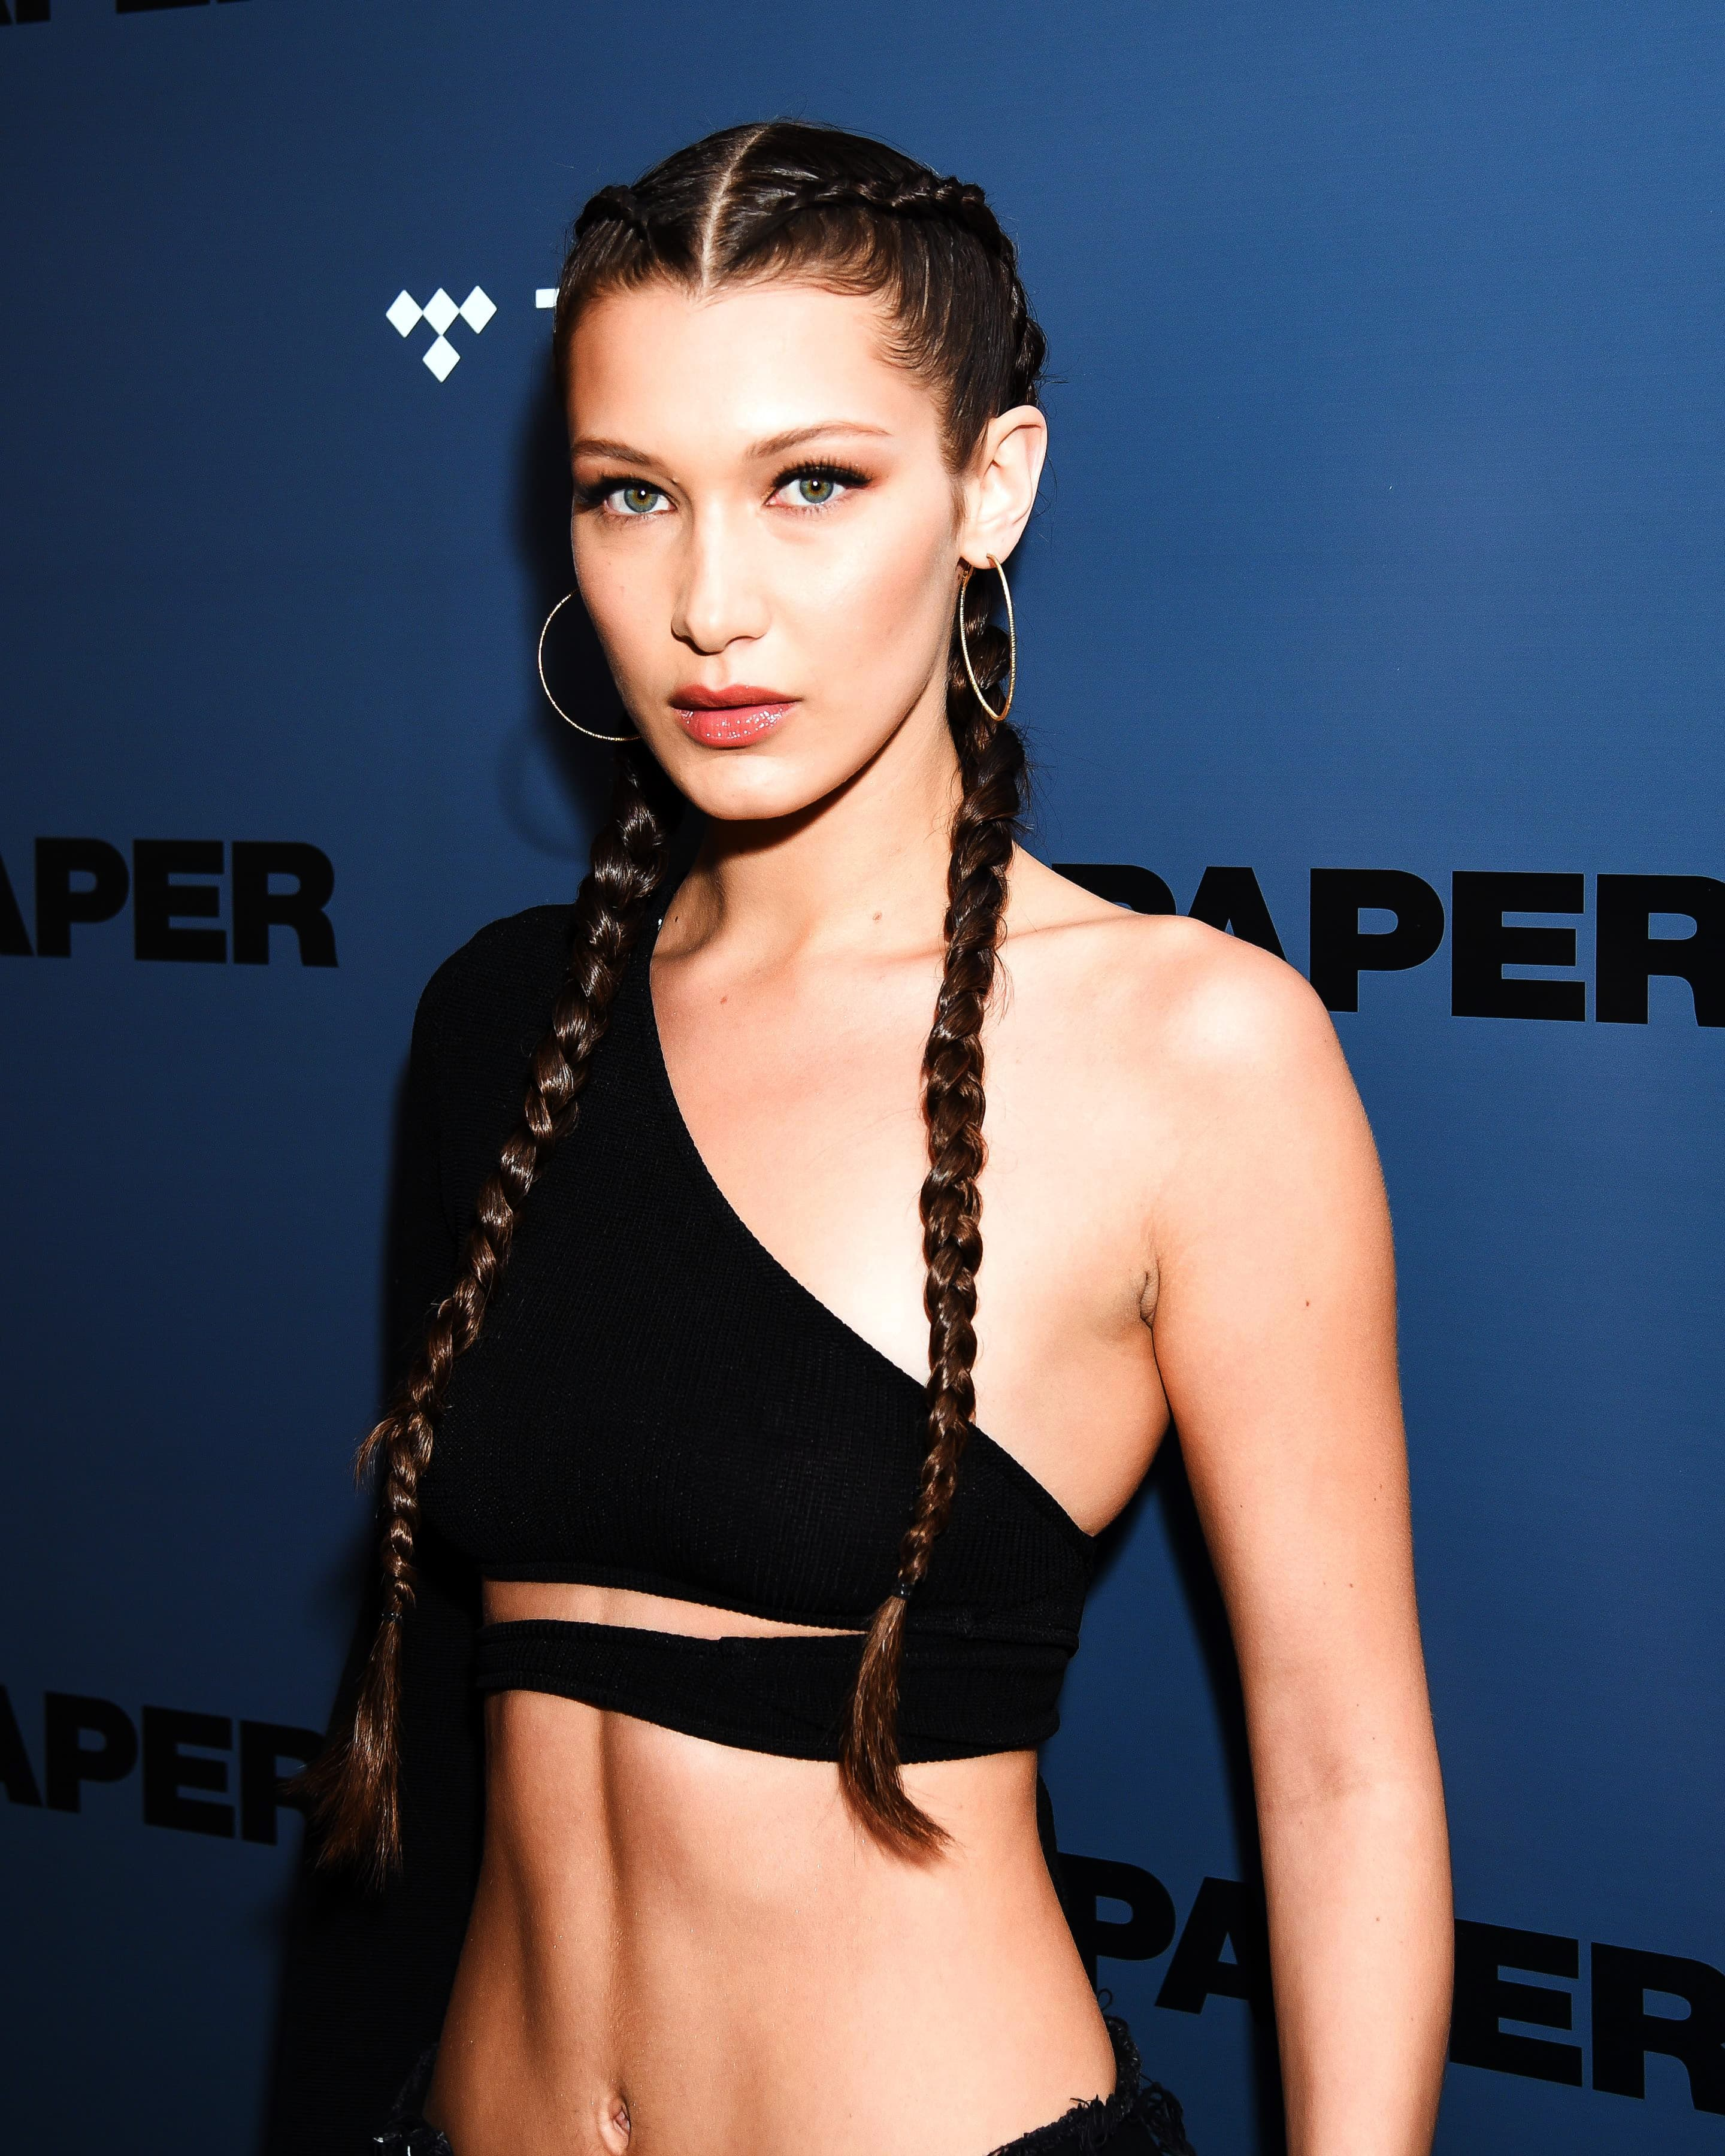 workout hairstyles: All Things Hair - IMAGE - Bella Hadid gym hairstyle